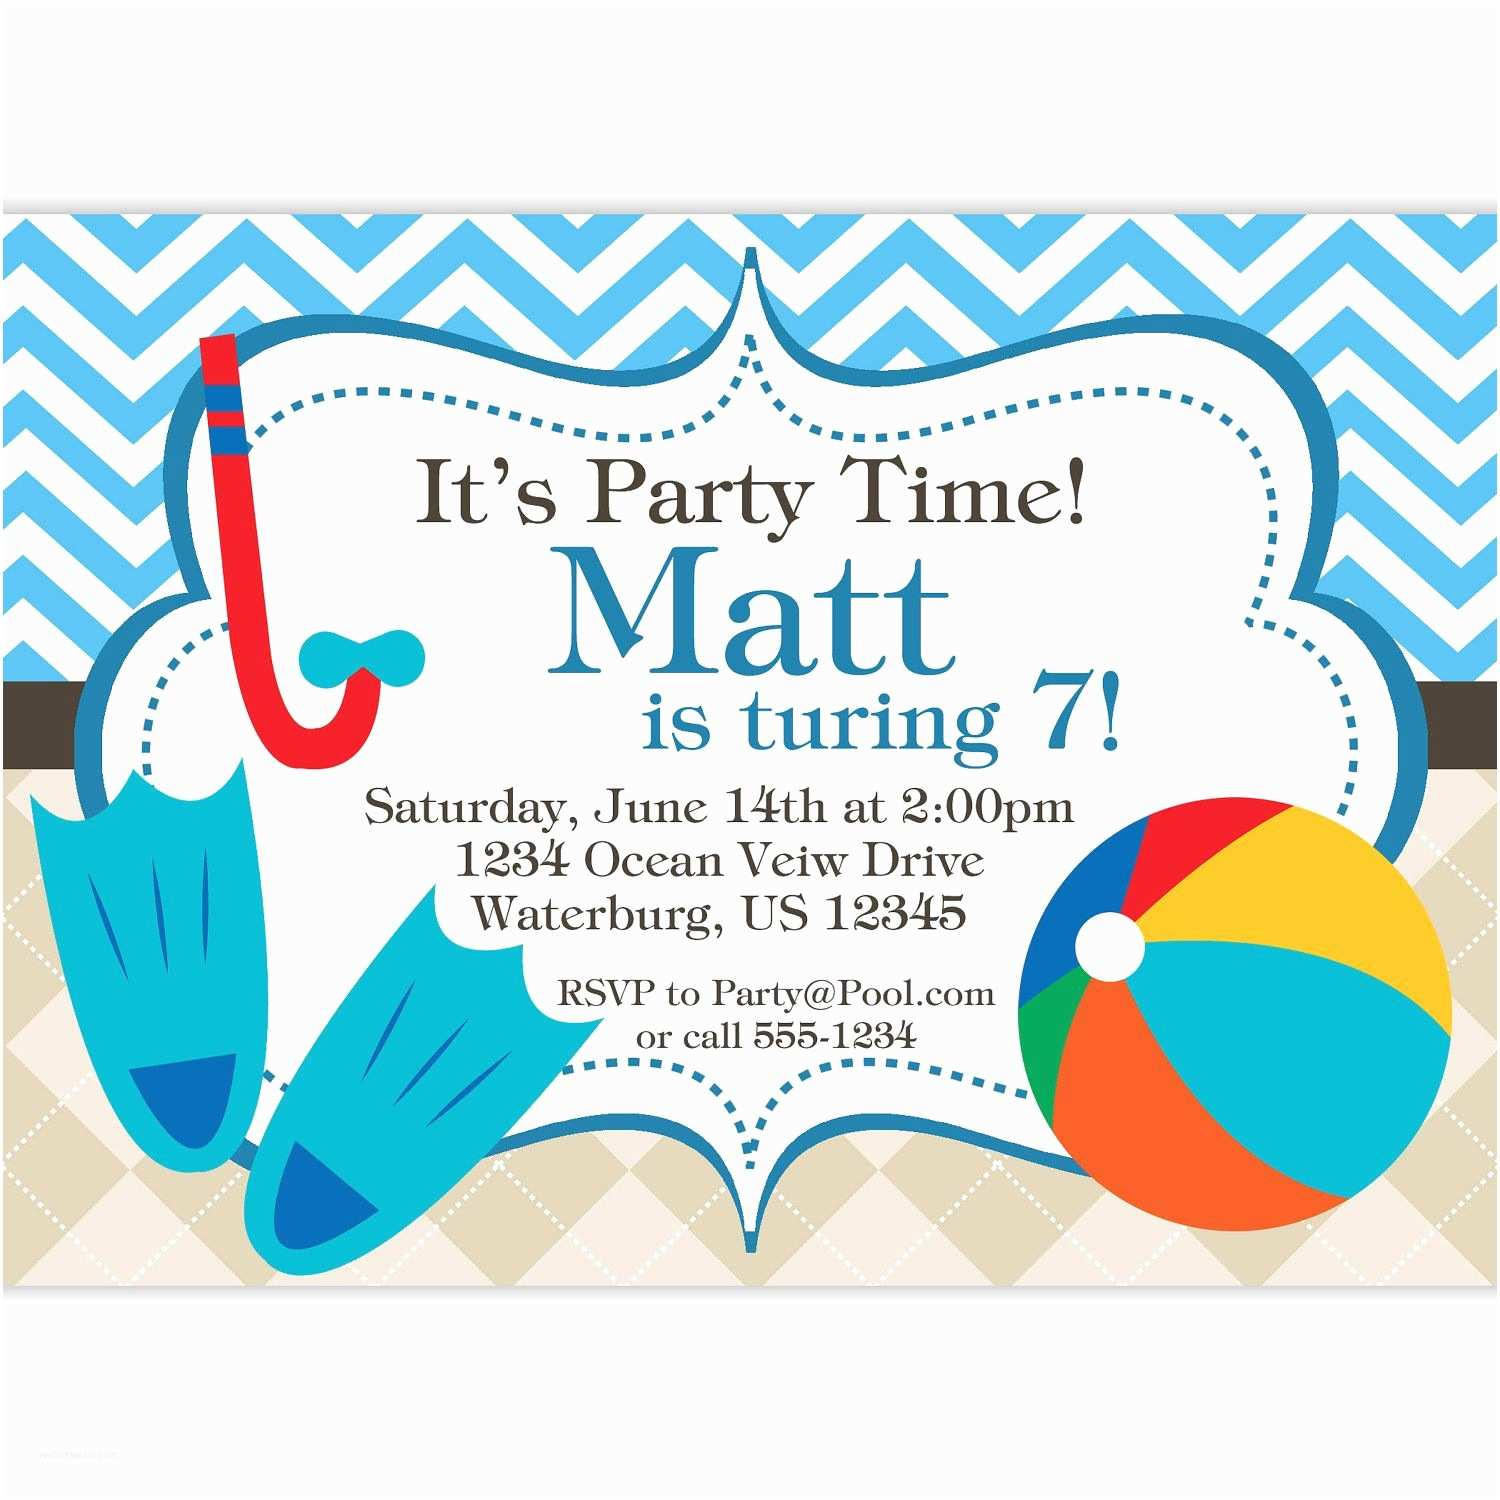 Free Pool Party Invitations Pool Party Invitation Blue Chevron and Tan Argyle Beach